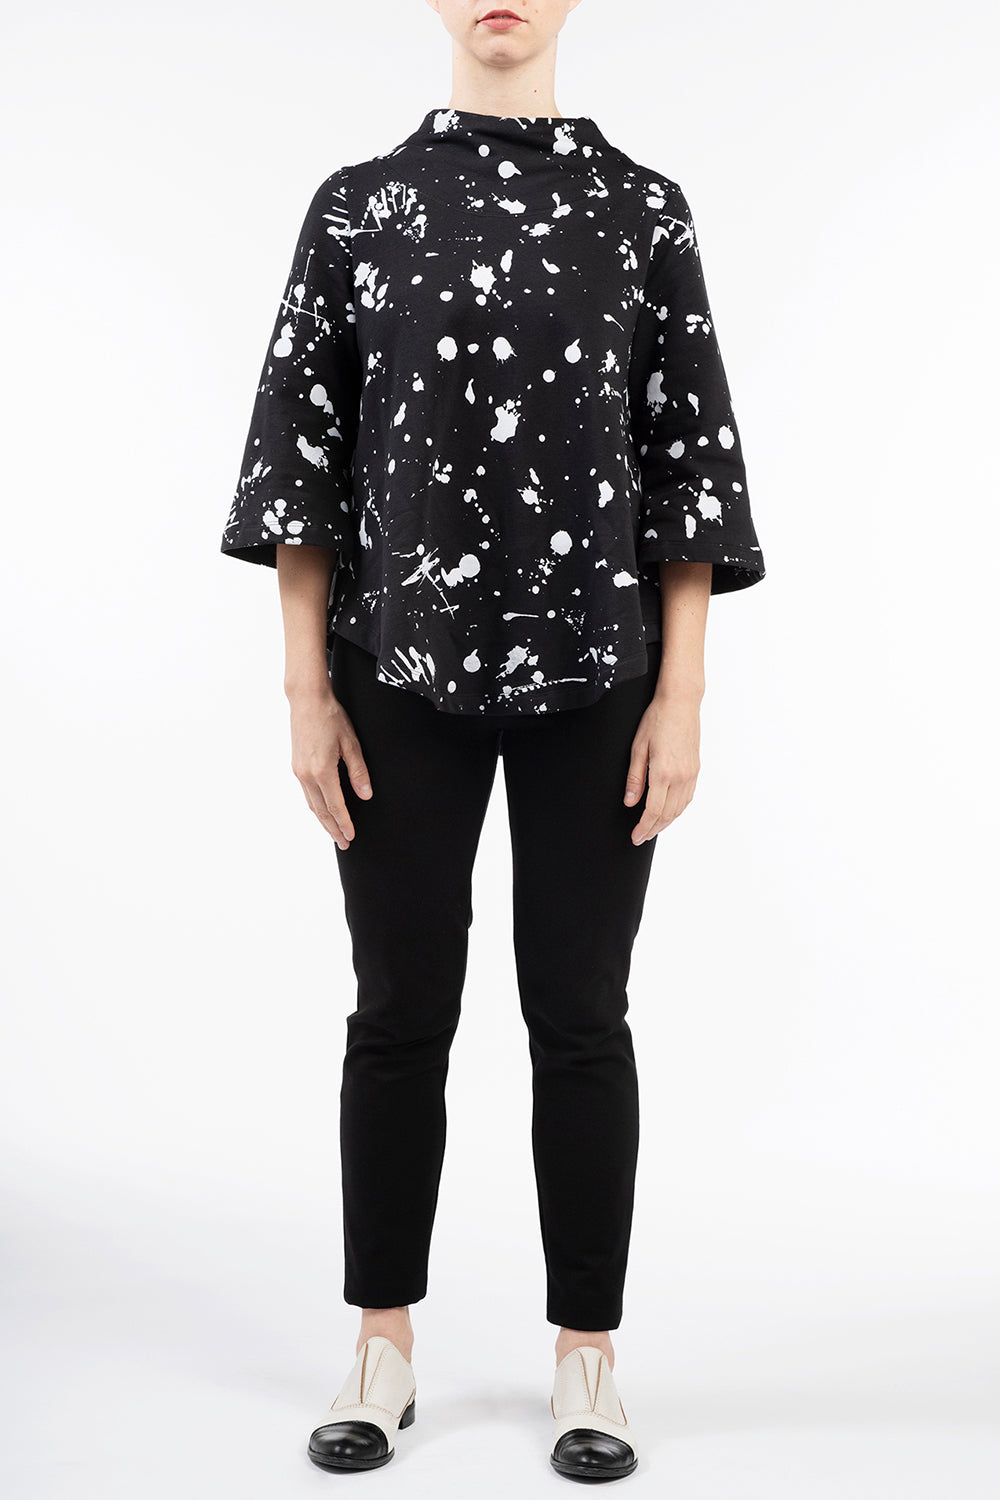 Splatter Swing Sweatshirt